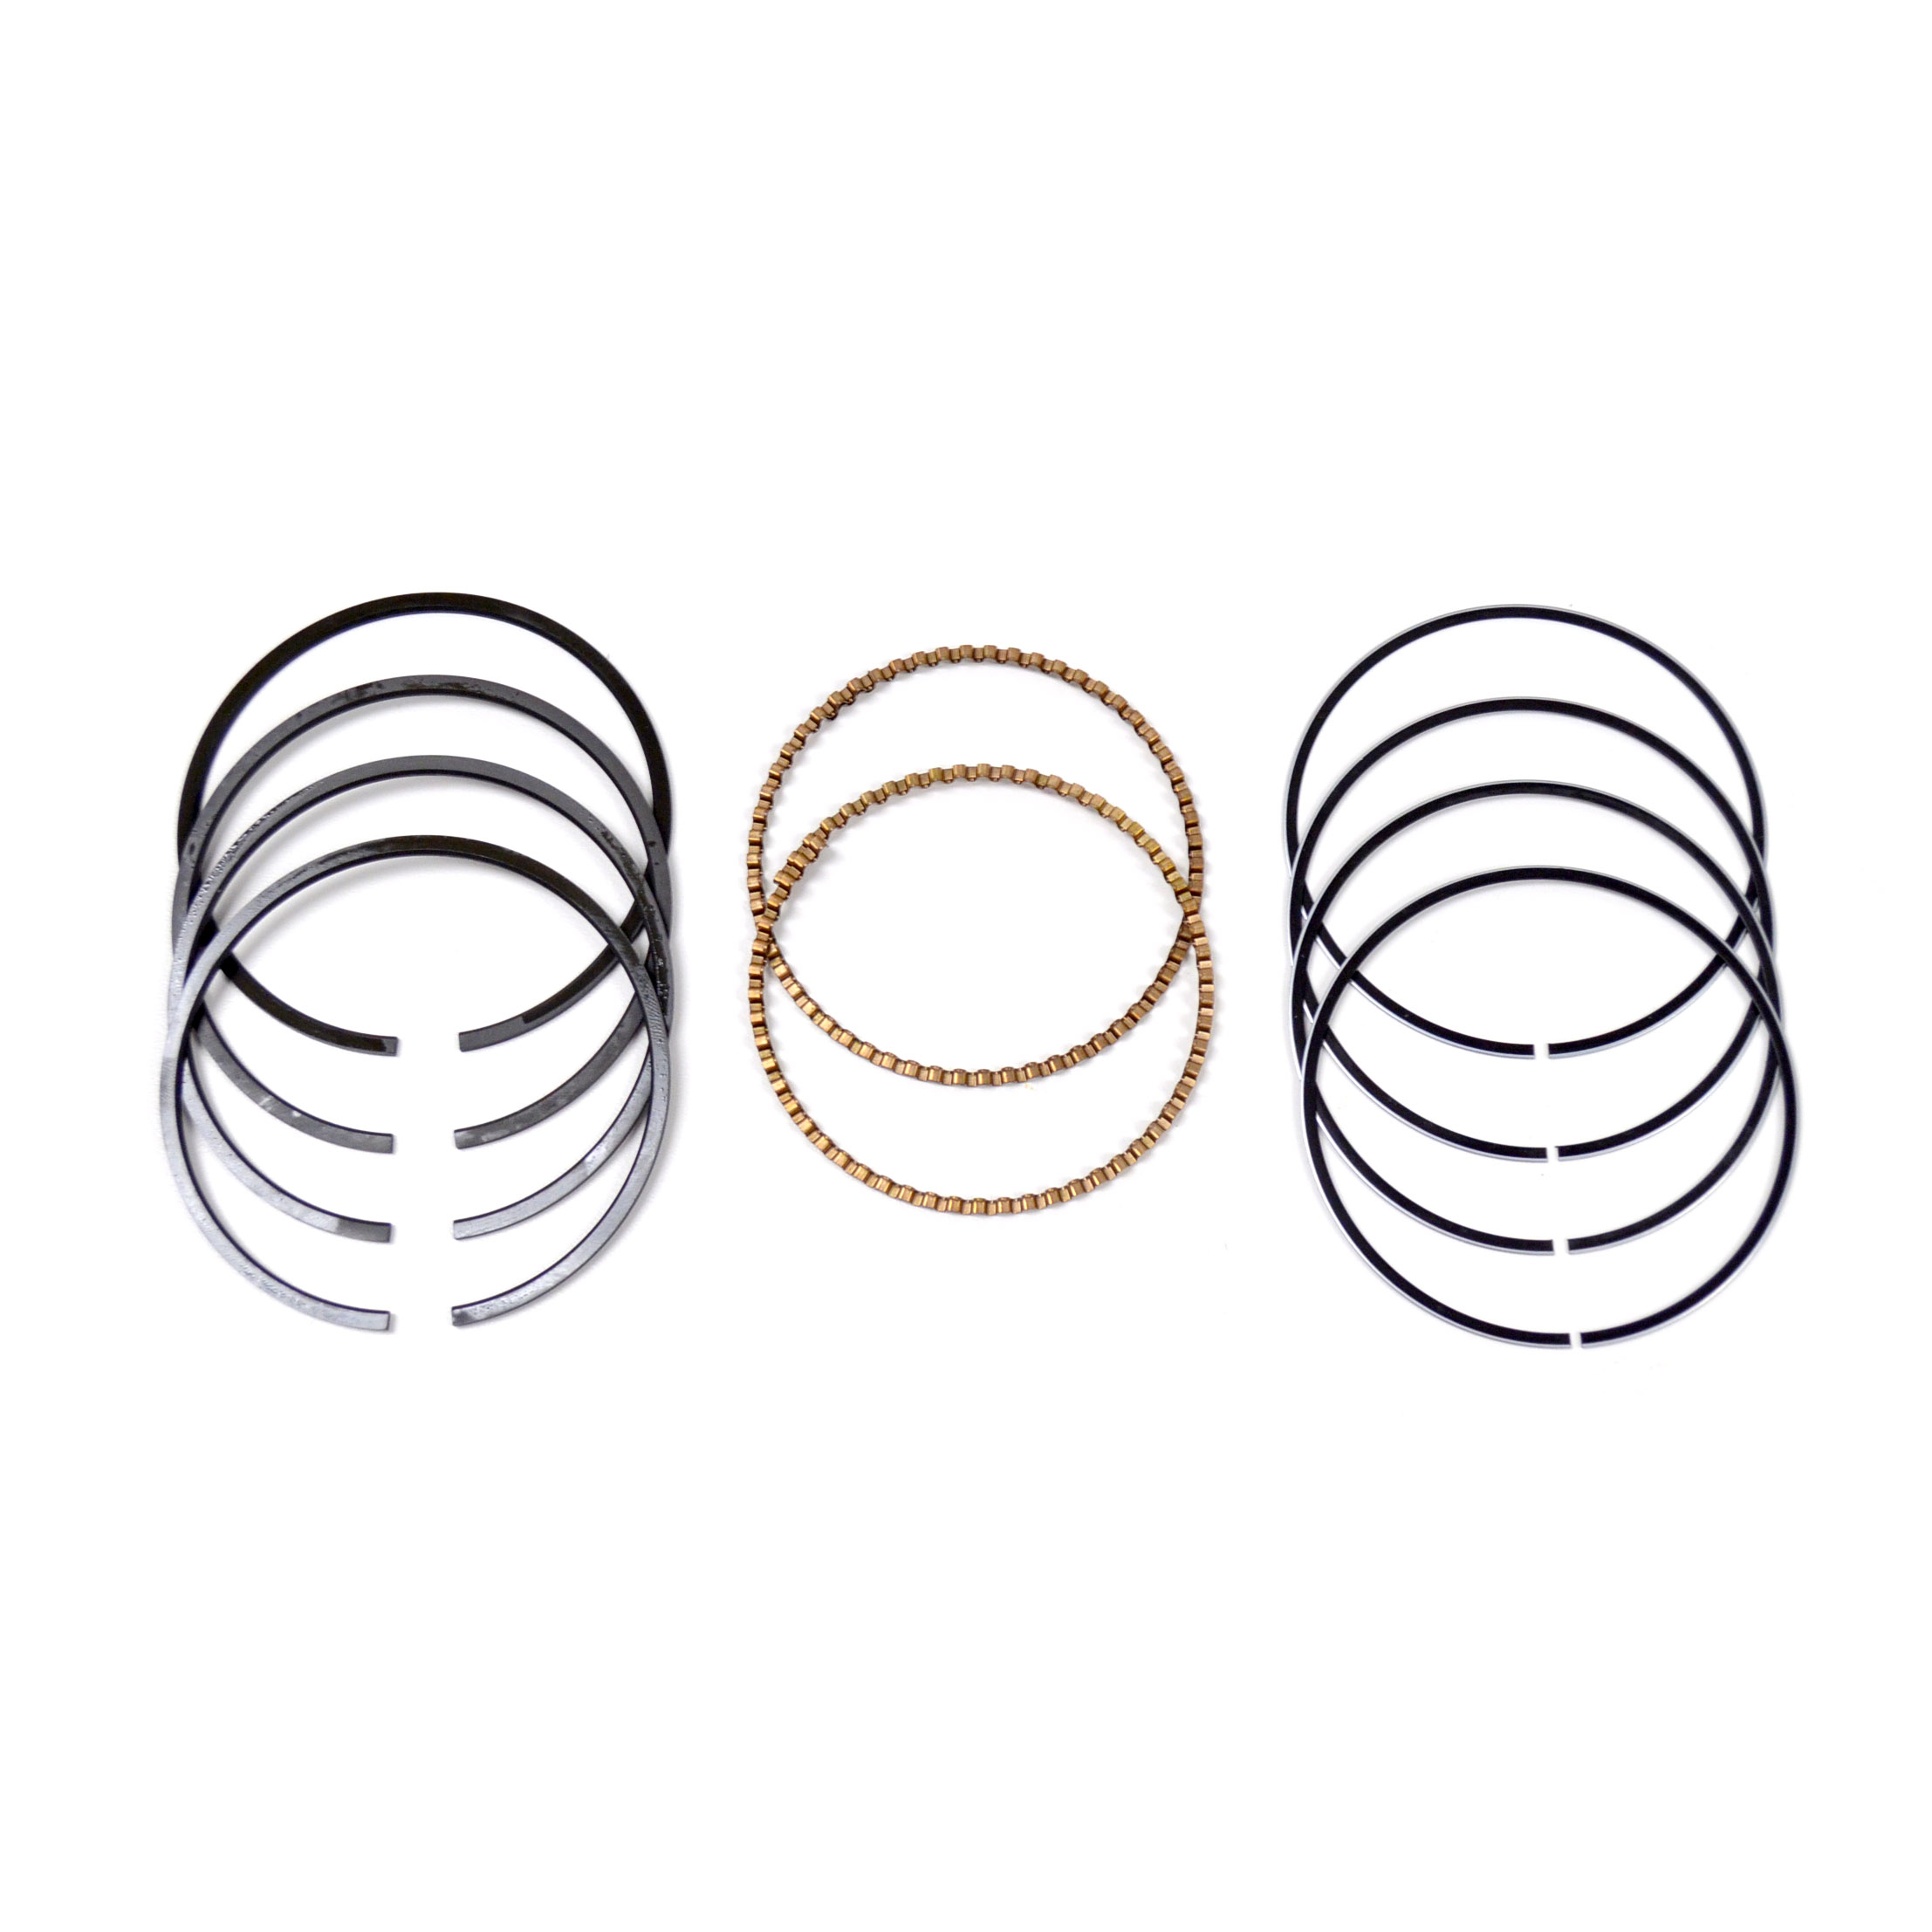 triumph 750 twin t140 tr7 motorcycle piston rings usa